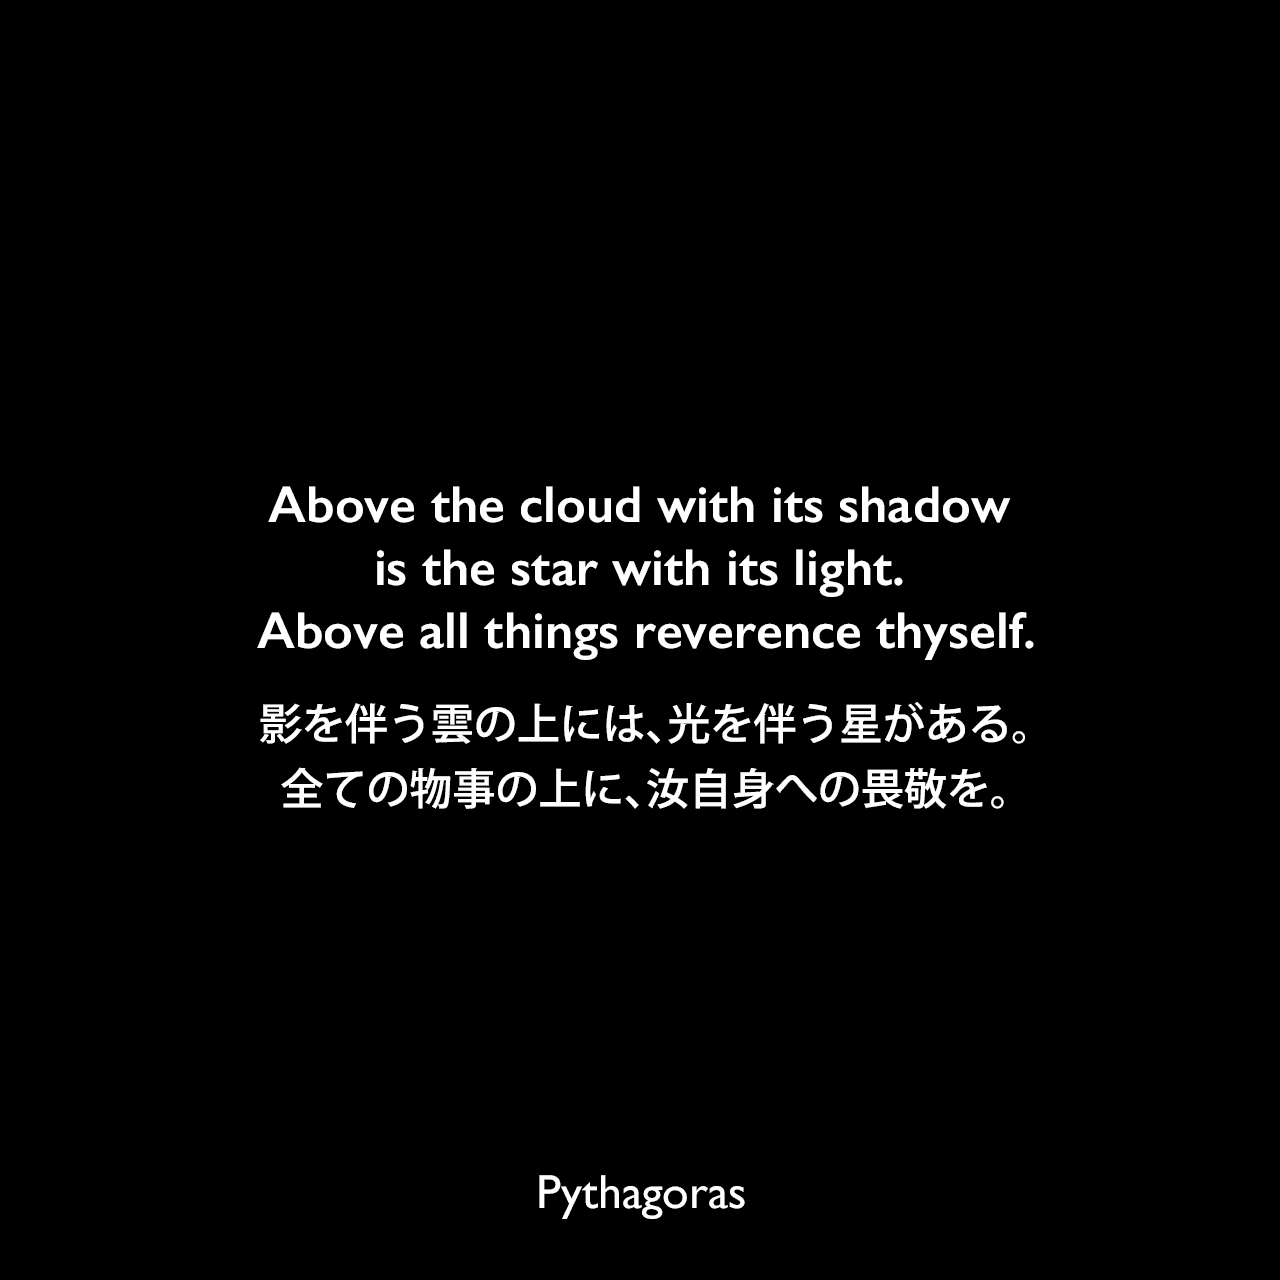 Above the cloud with its shadow is the star with its light. Above all things reverence thyself.影を伴う雲の上には、光を伴う星がある。全ての物事の上に、汝自身への畏敬を。- John Strohmeierの本「 Divine Harmony: The Life and Teachings of Pythagoras」よりPythagoras